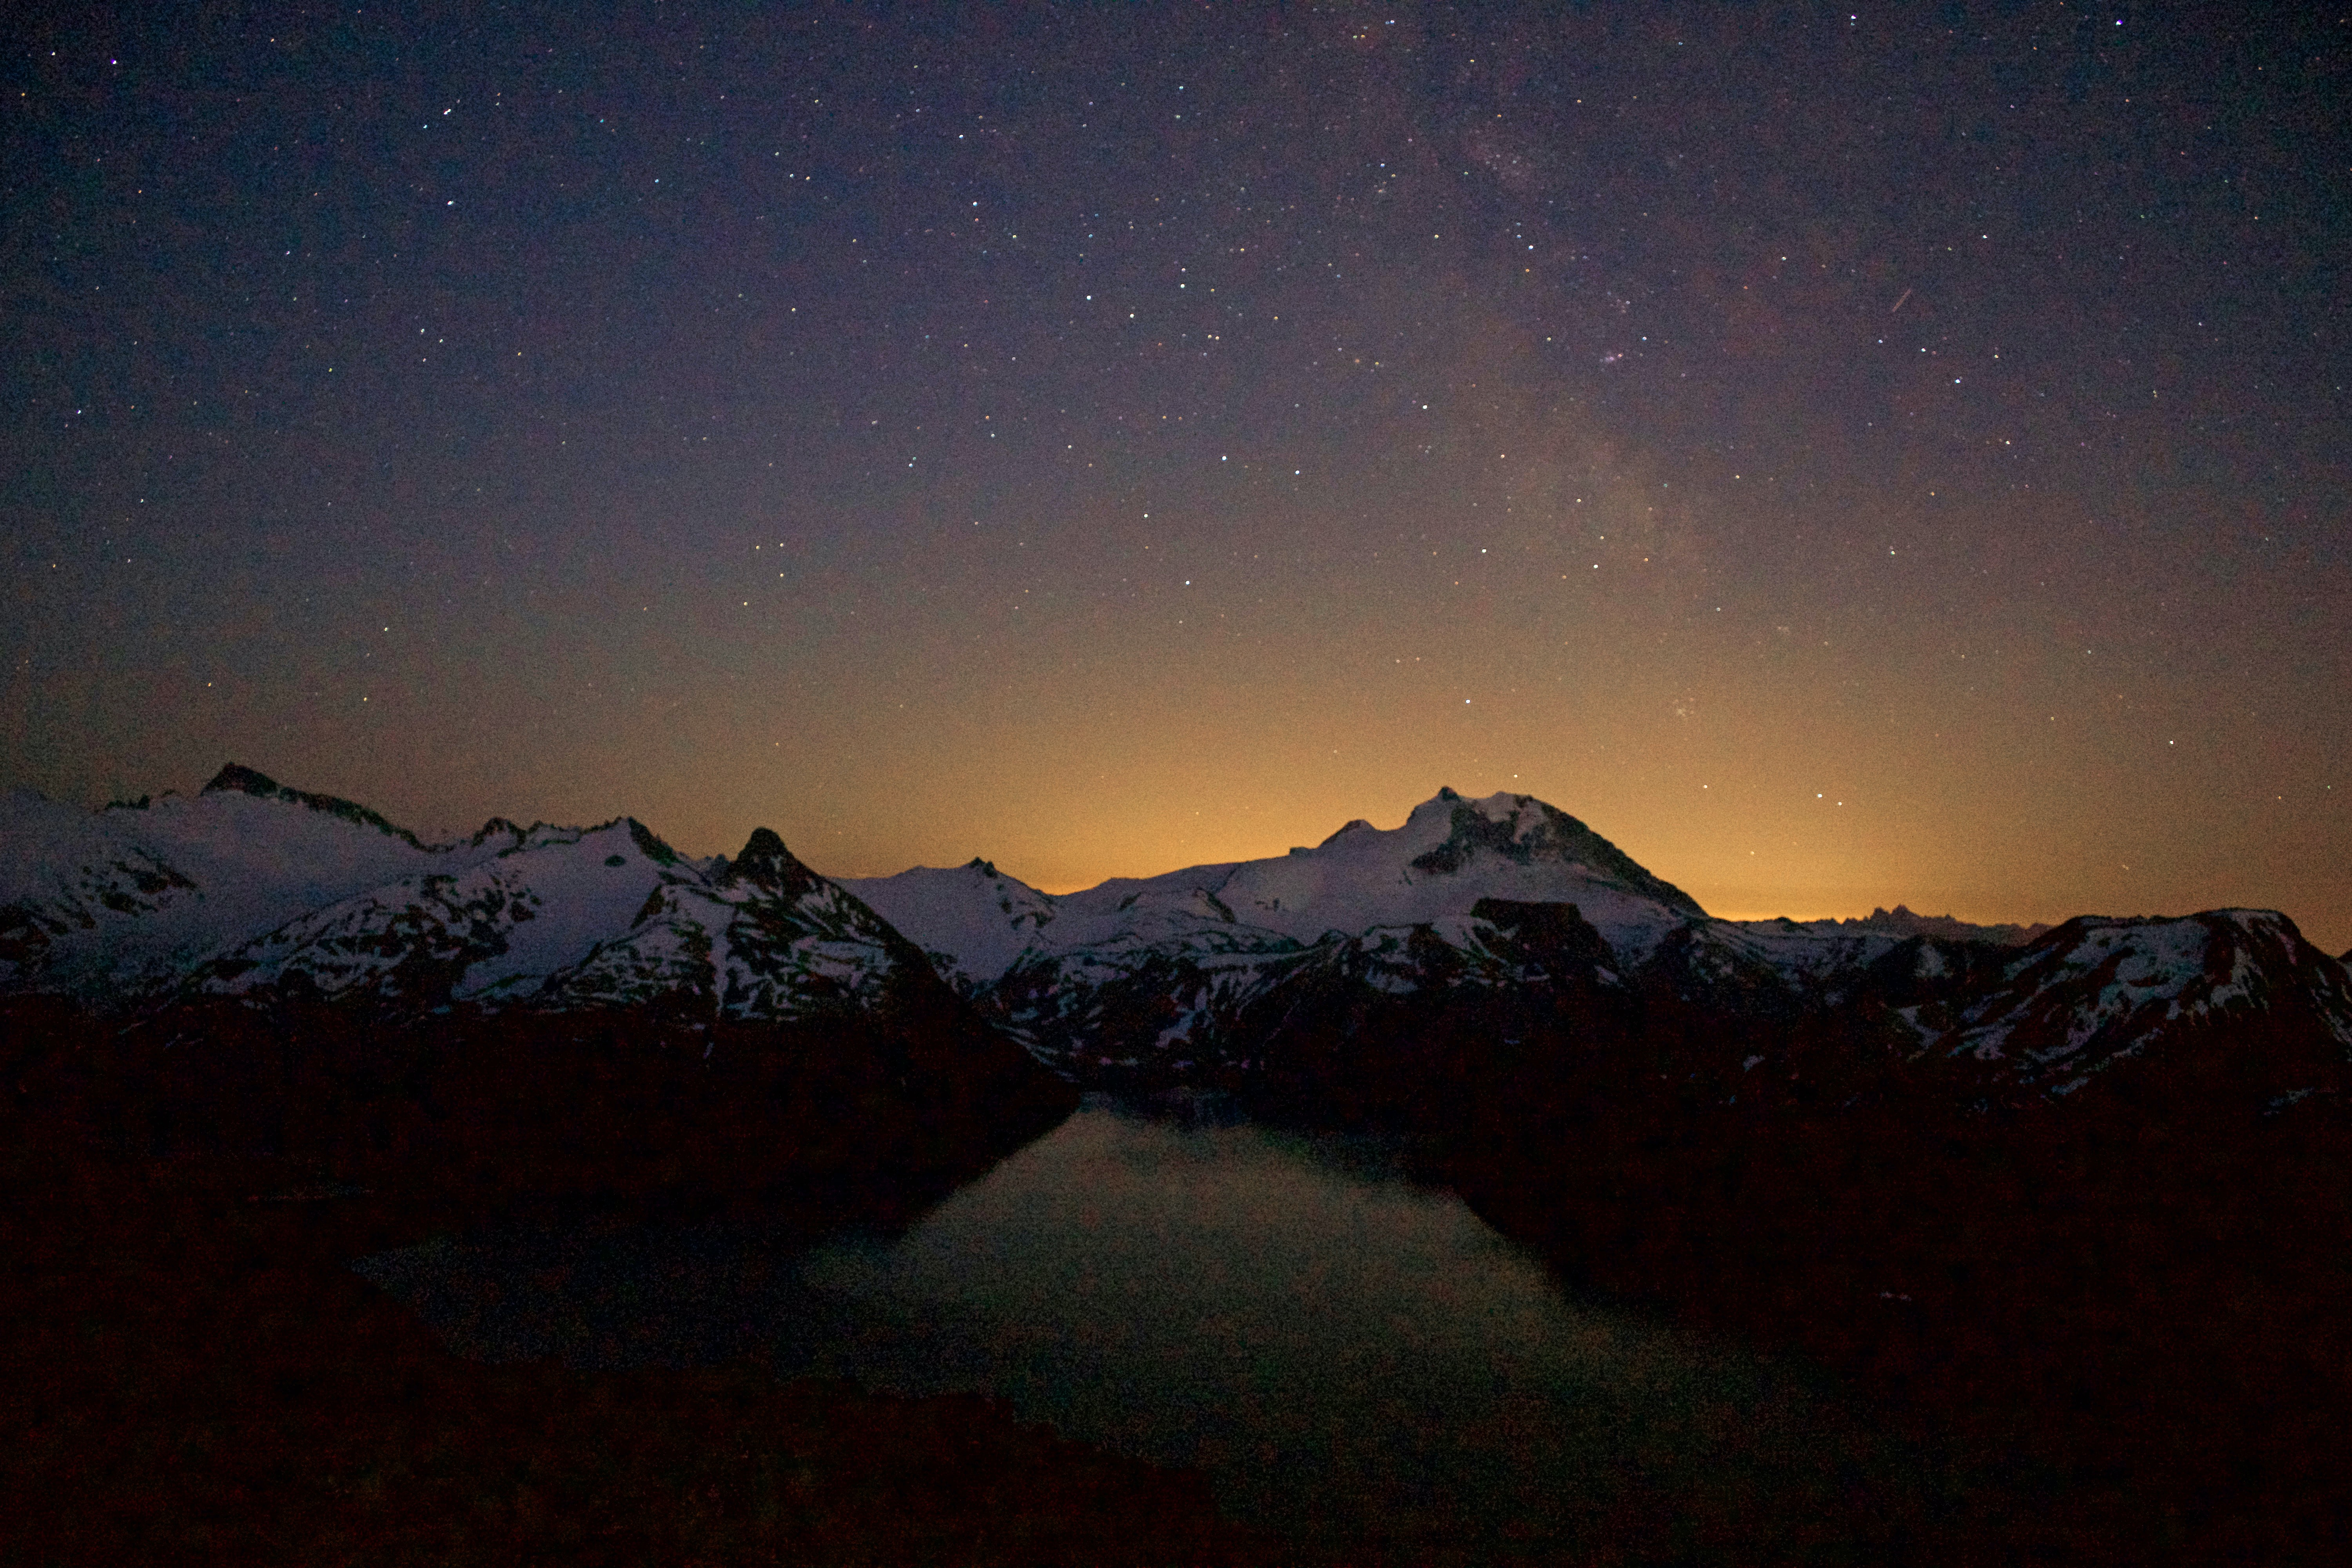 snow covered mountains at night